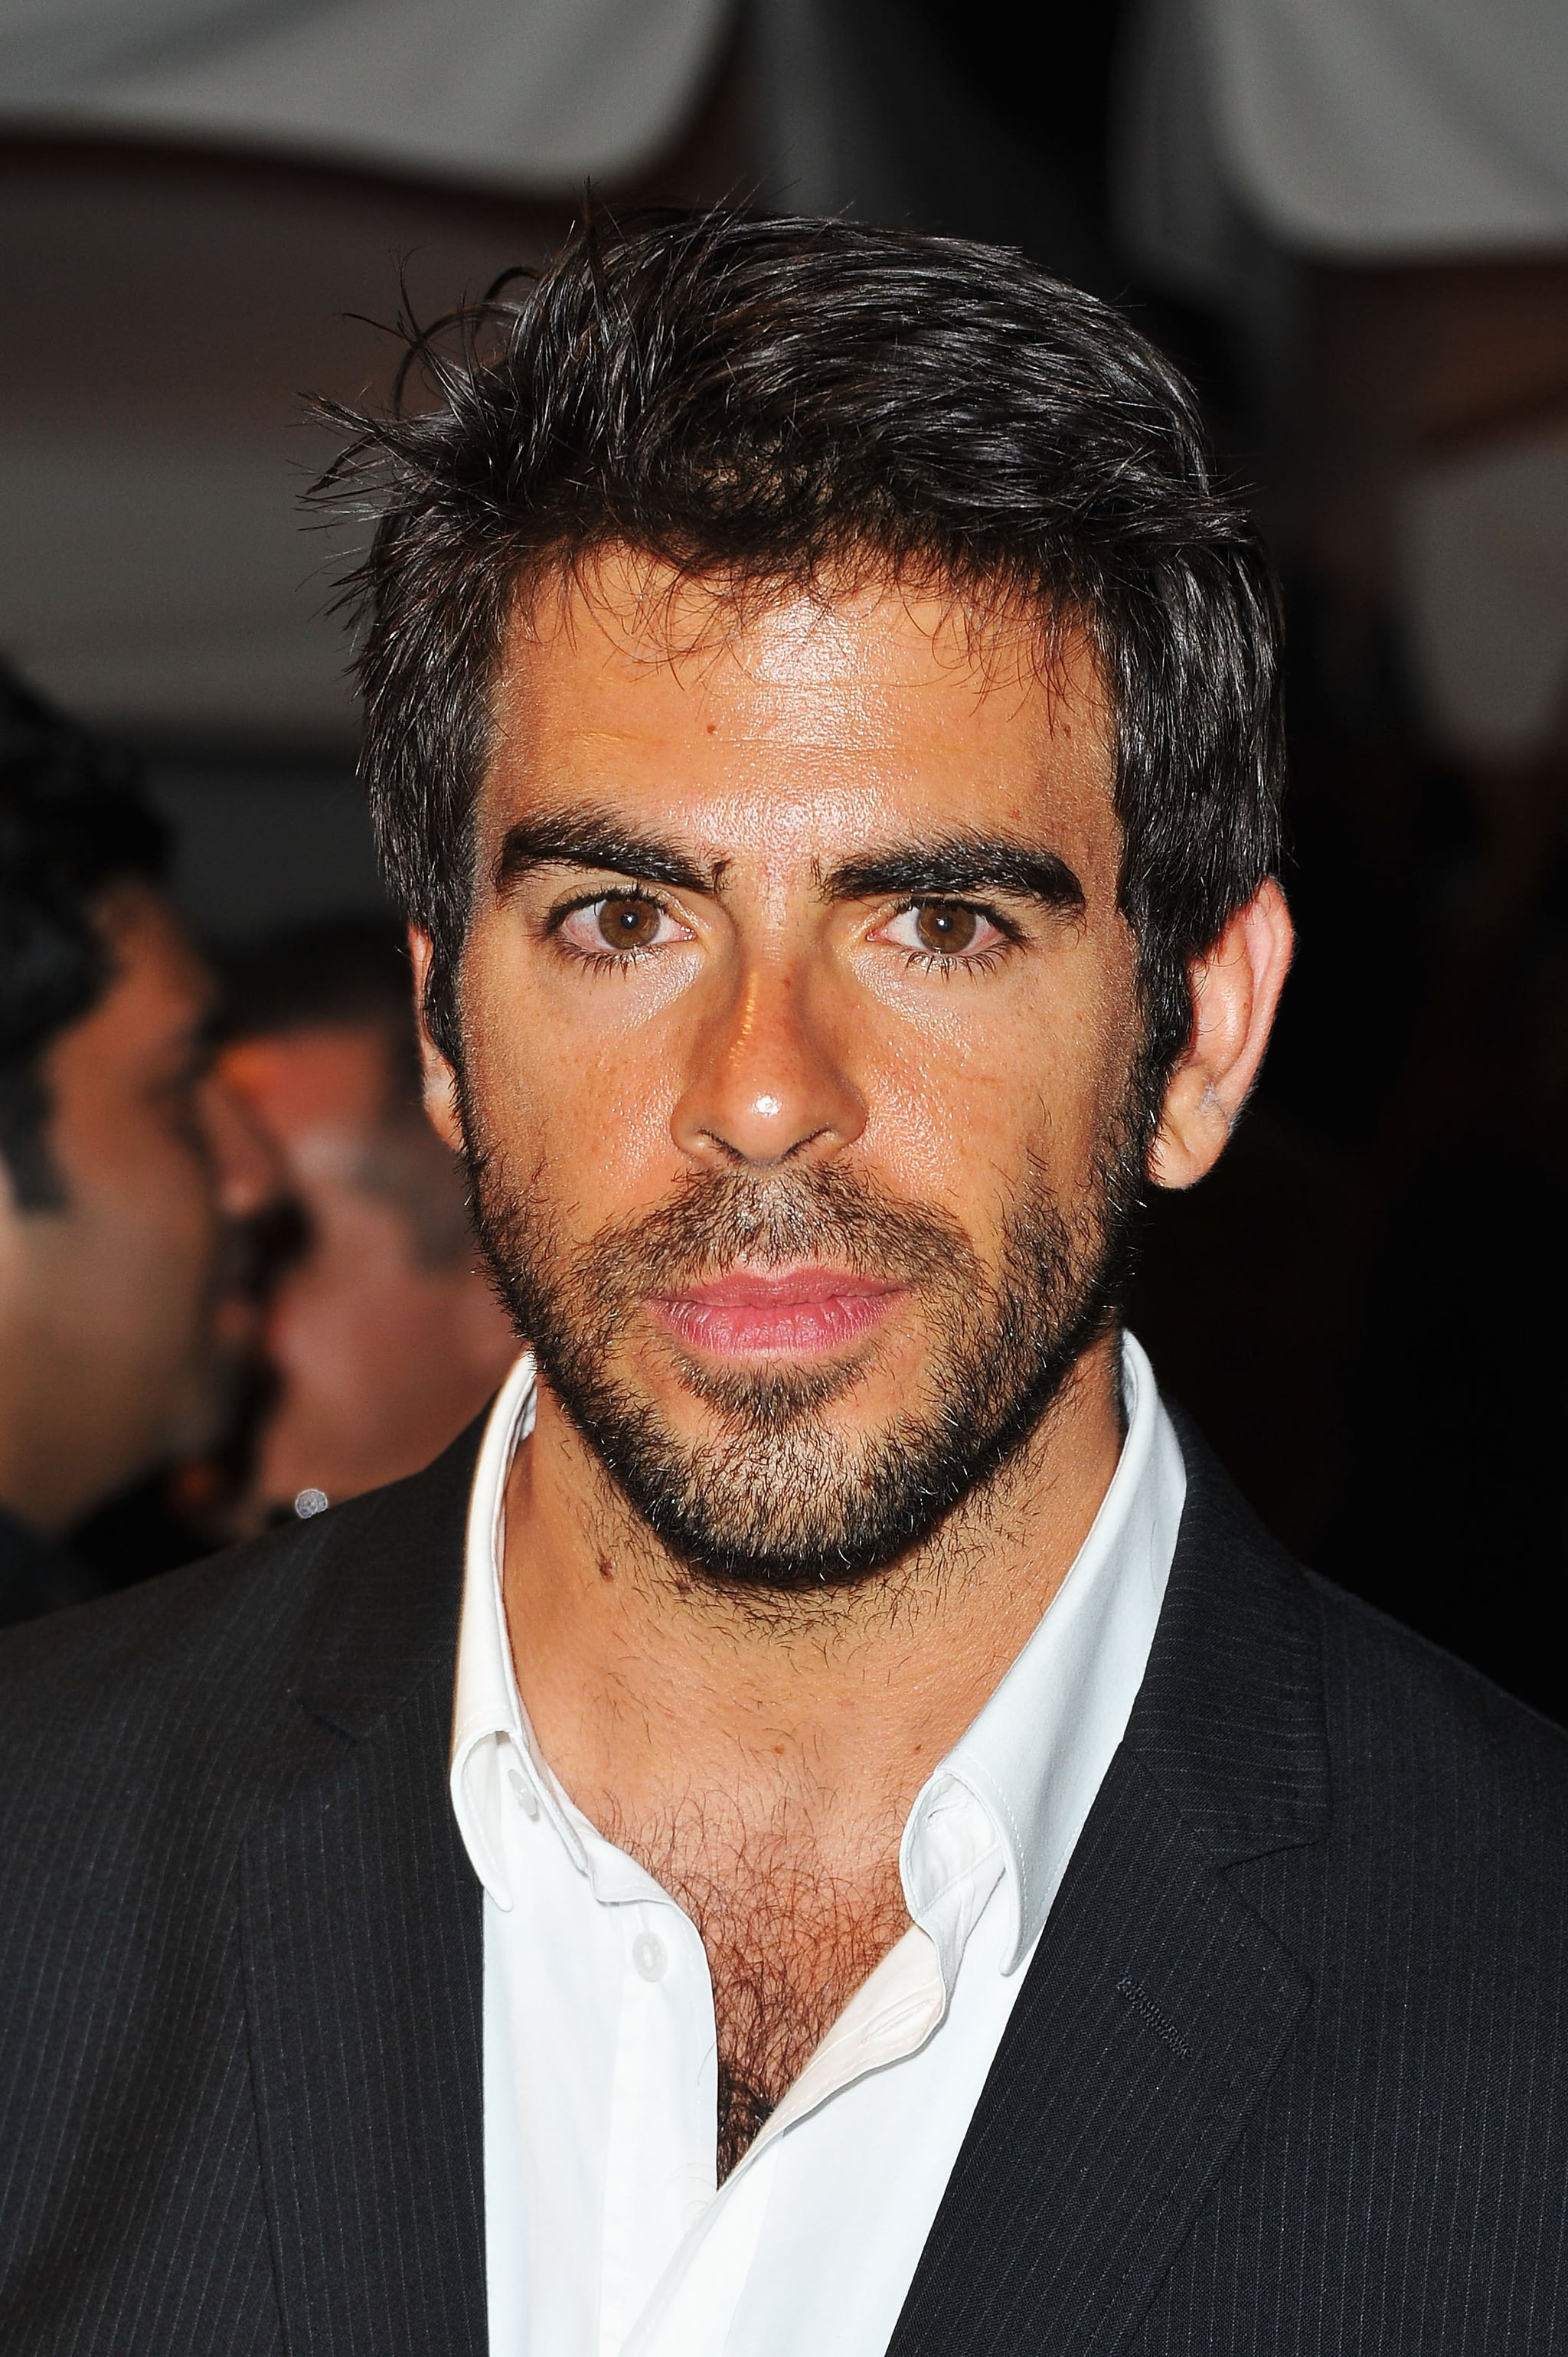 Eli Roth at the Venice Film Festival opening dinner.